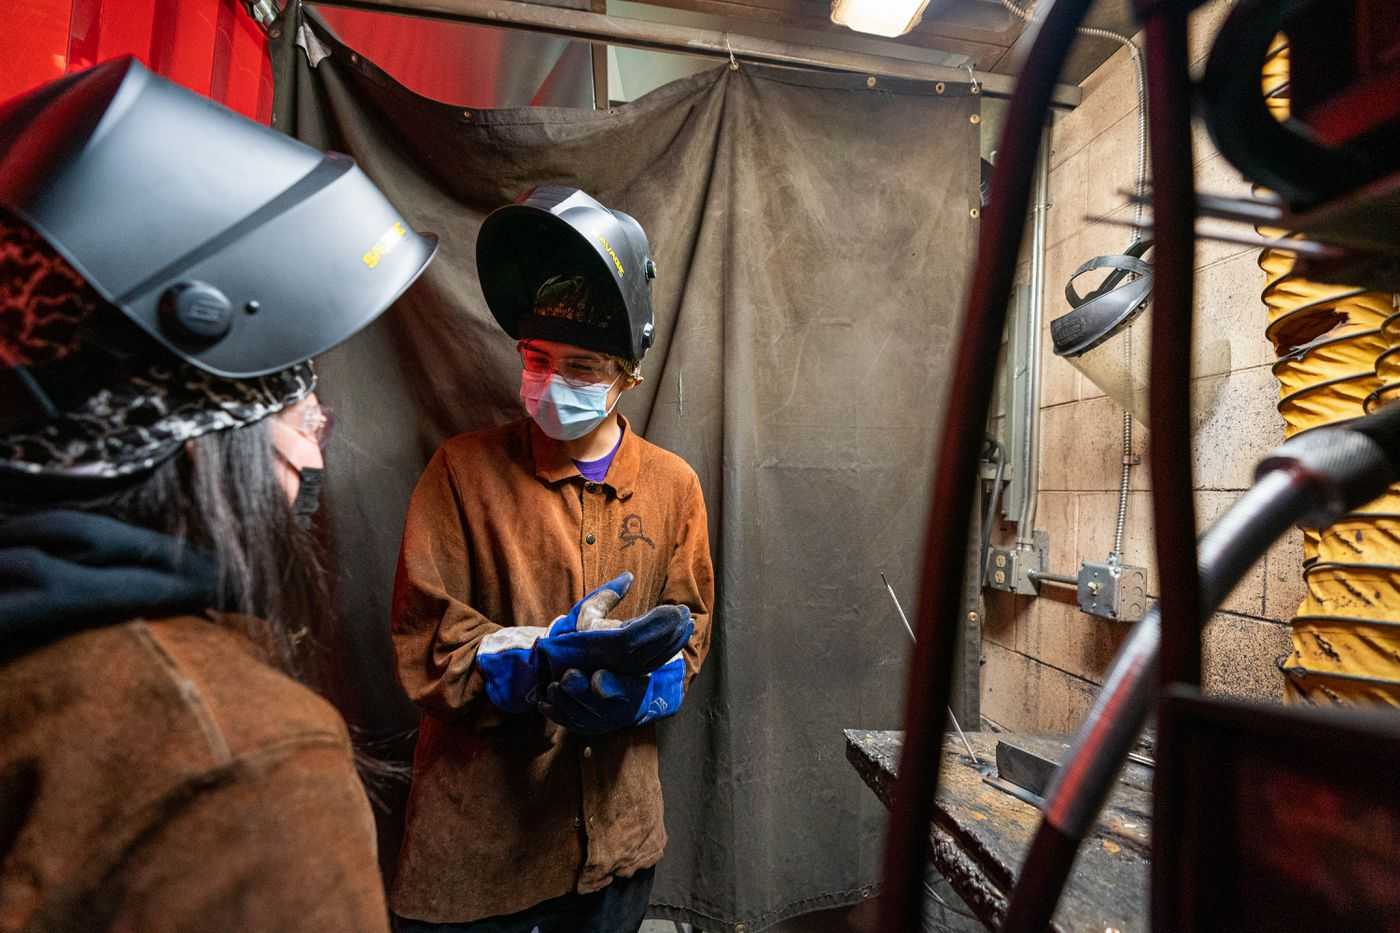 Elsie Kaganak, left, and Luke Isaac practice welding at King Tech High School on April 2, 2021. Kaganak, who is from Scammon Bay, and Isaac, from Marshall, are students at Kusilvak Career Academy. (Loren Holmes / ADN)